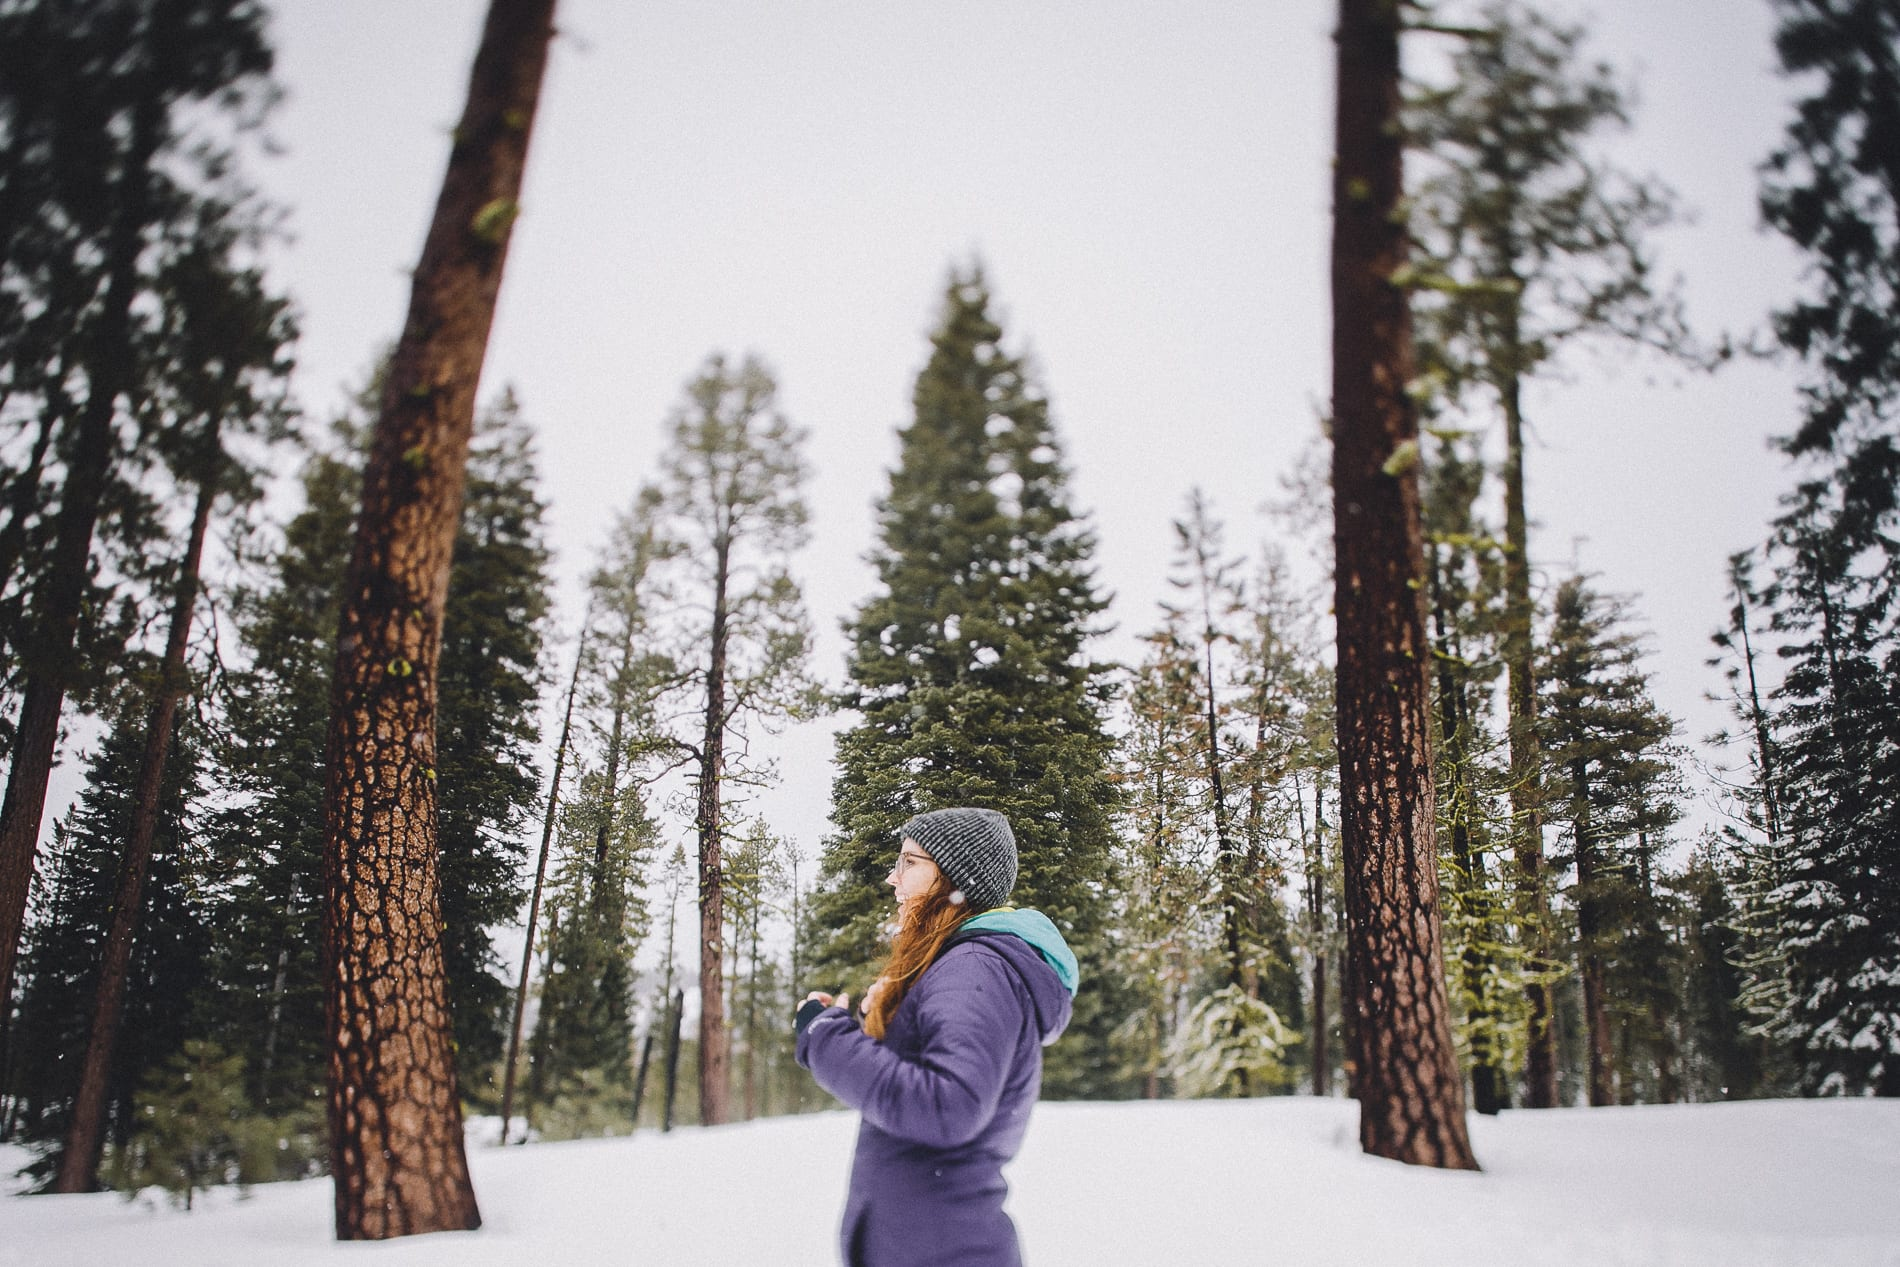 mount-lassen-adventures-lifestyle-portrait-photography-33